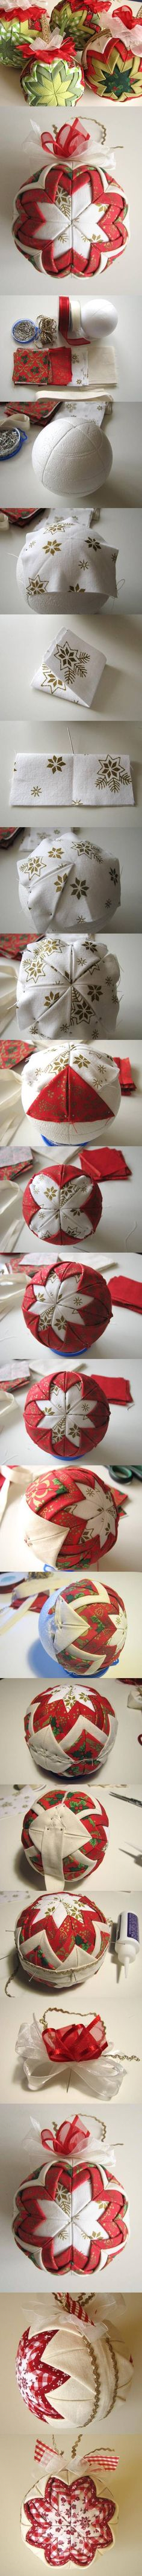 great instructional pics: DIY Patchwork for Christmas DIY Patchwork for Christmas